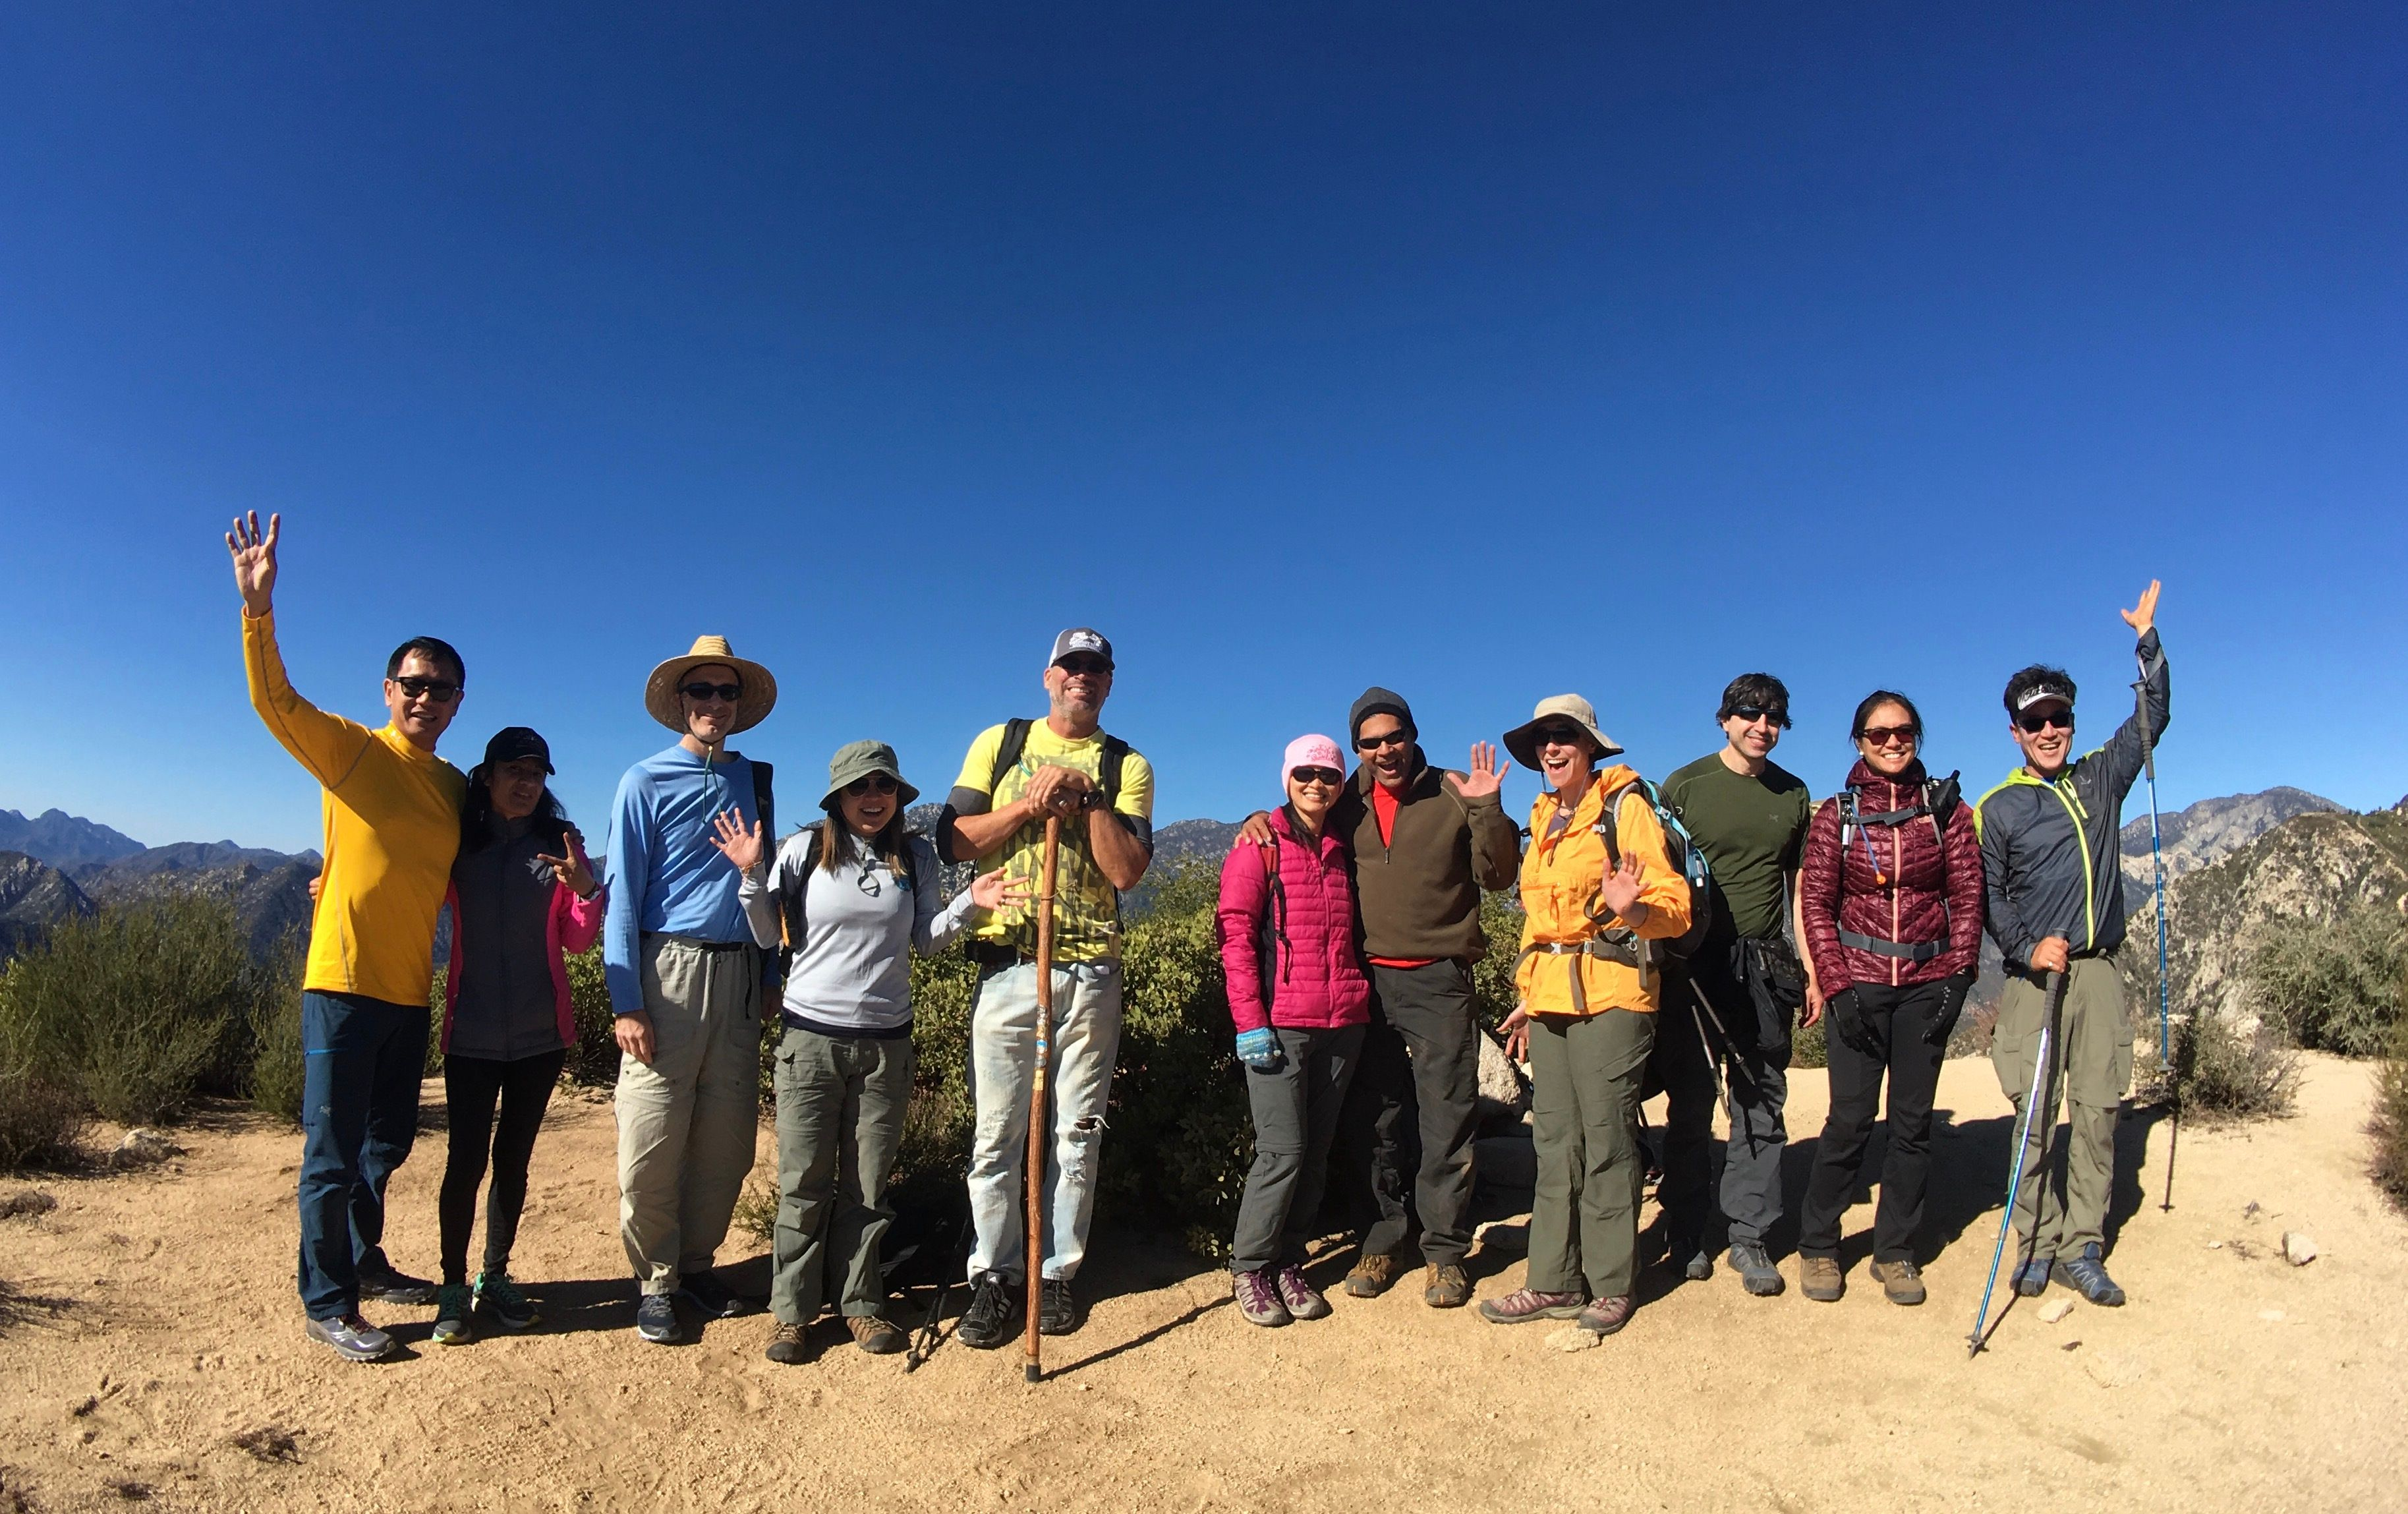 mt baldy single personals Singles on kreable young  baldy mountain summit cimarron, nm 2016  summit of mount massive, co 2017 8 mile creek cullman, al 2013.